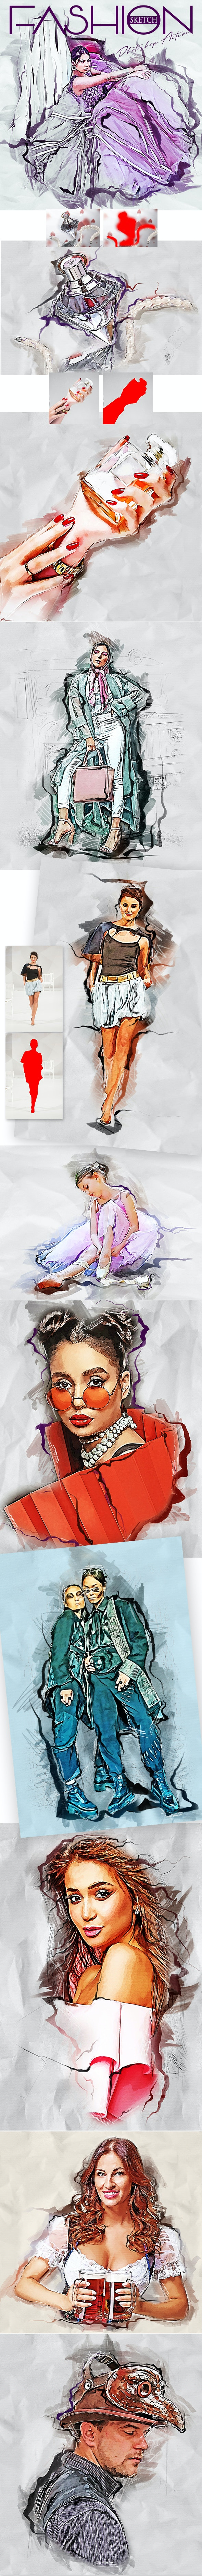 Fashion Sketch Photoshop Action - Photo Effects Actions